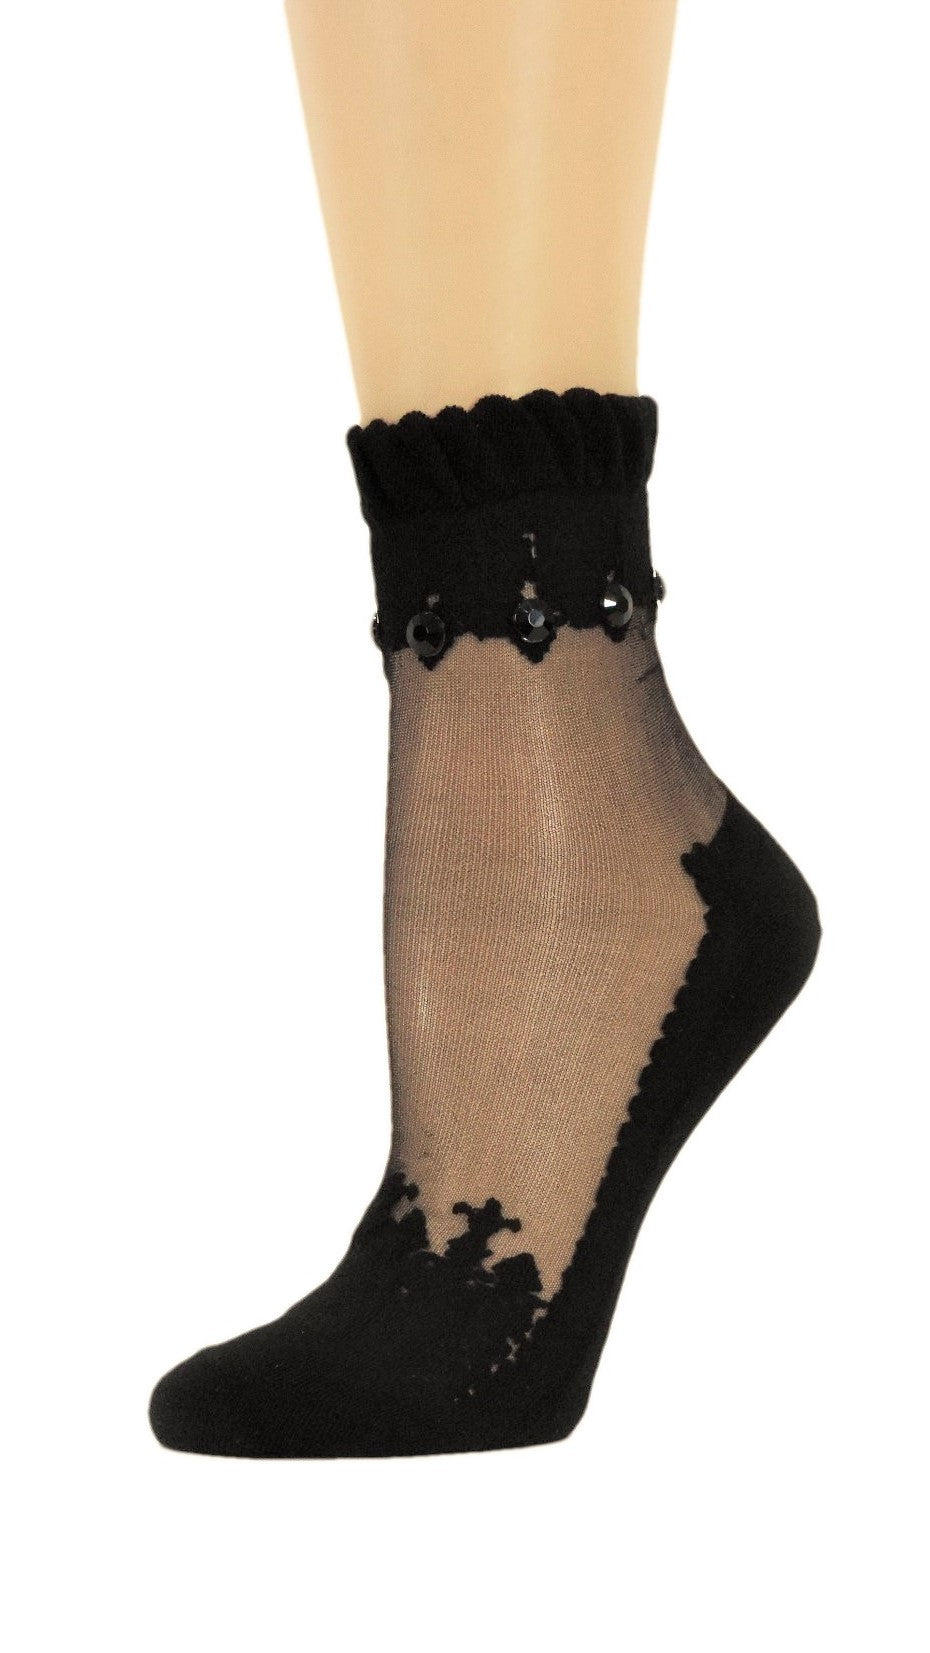 Dashing Black Custom Sheer Socks with beads - Global Trendz Fashion®